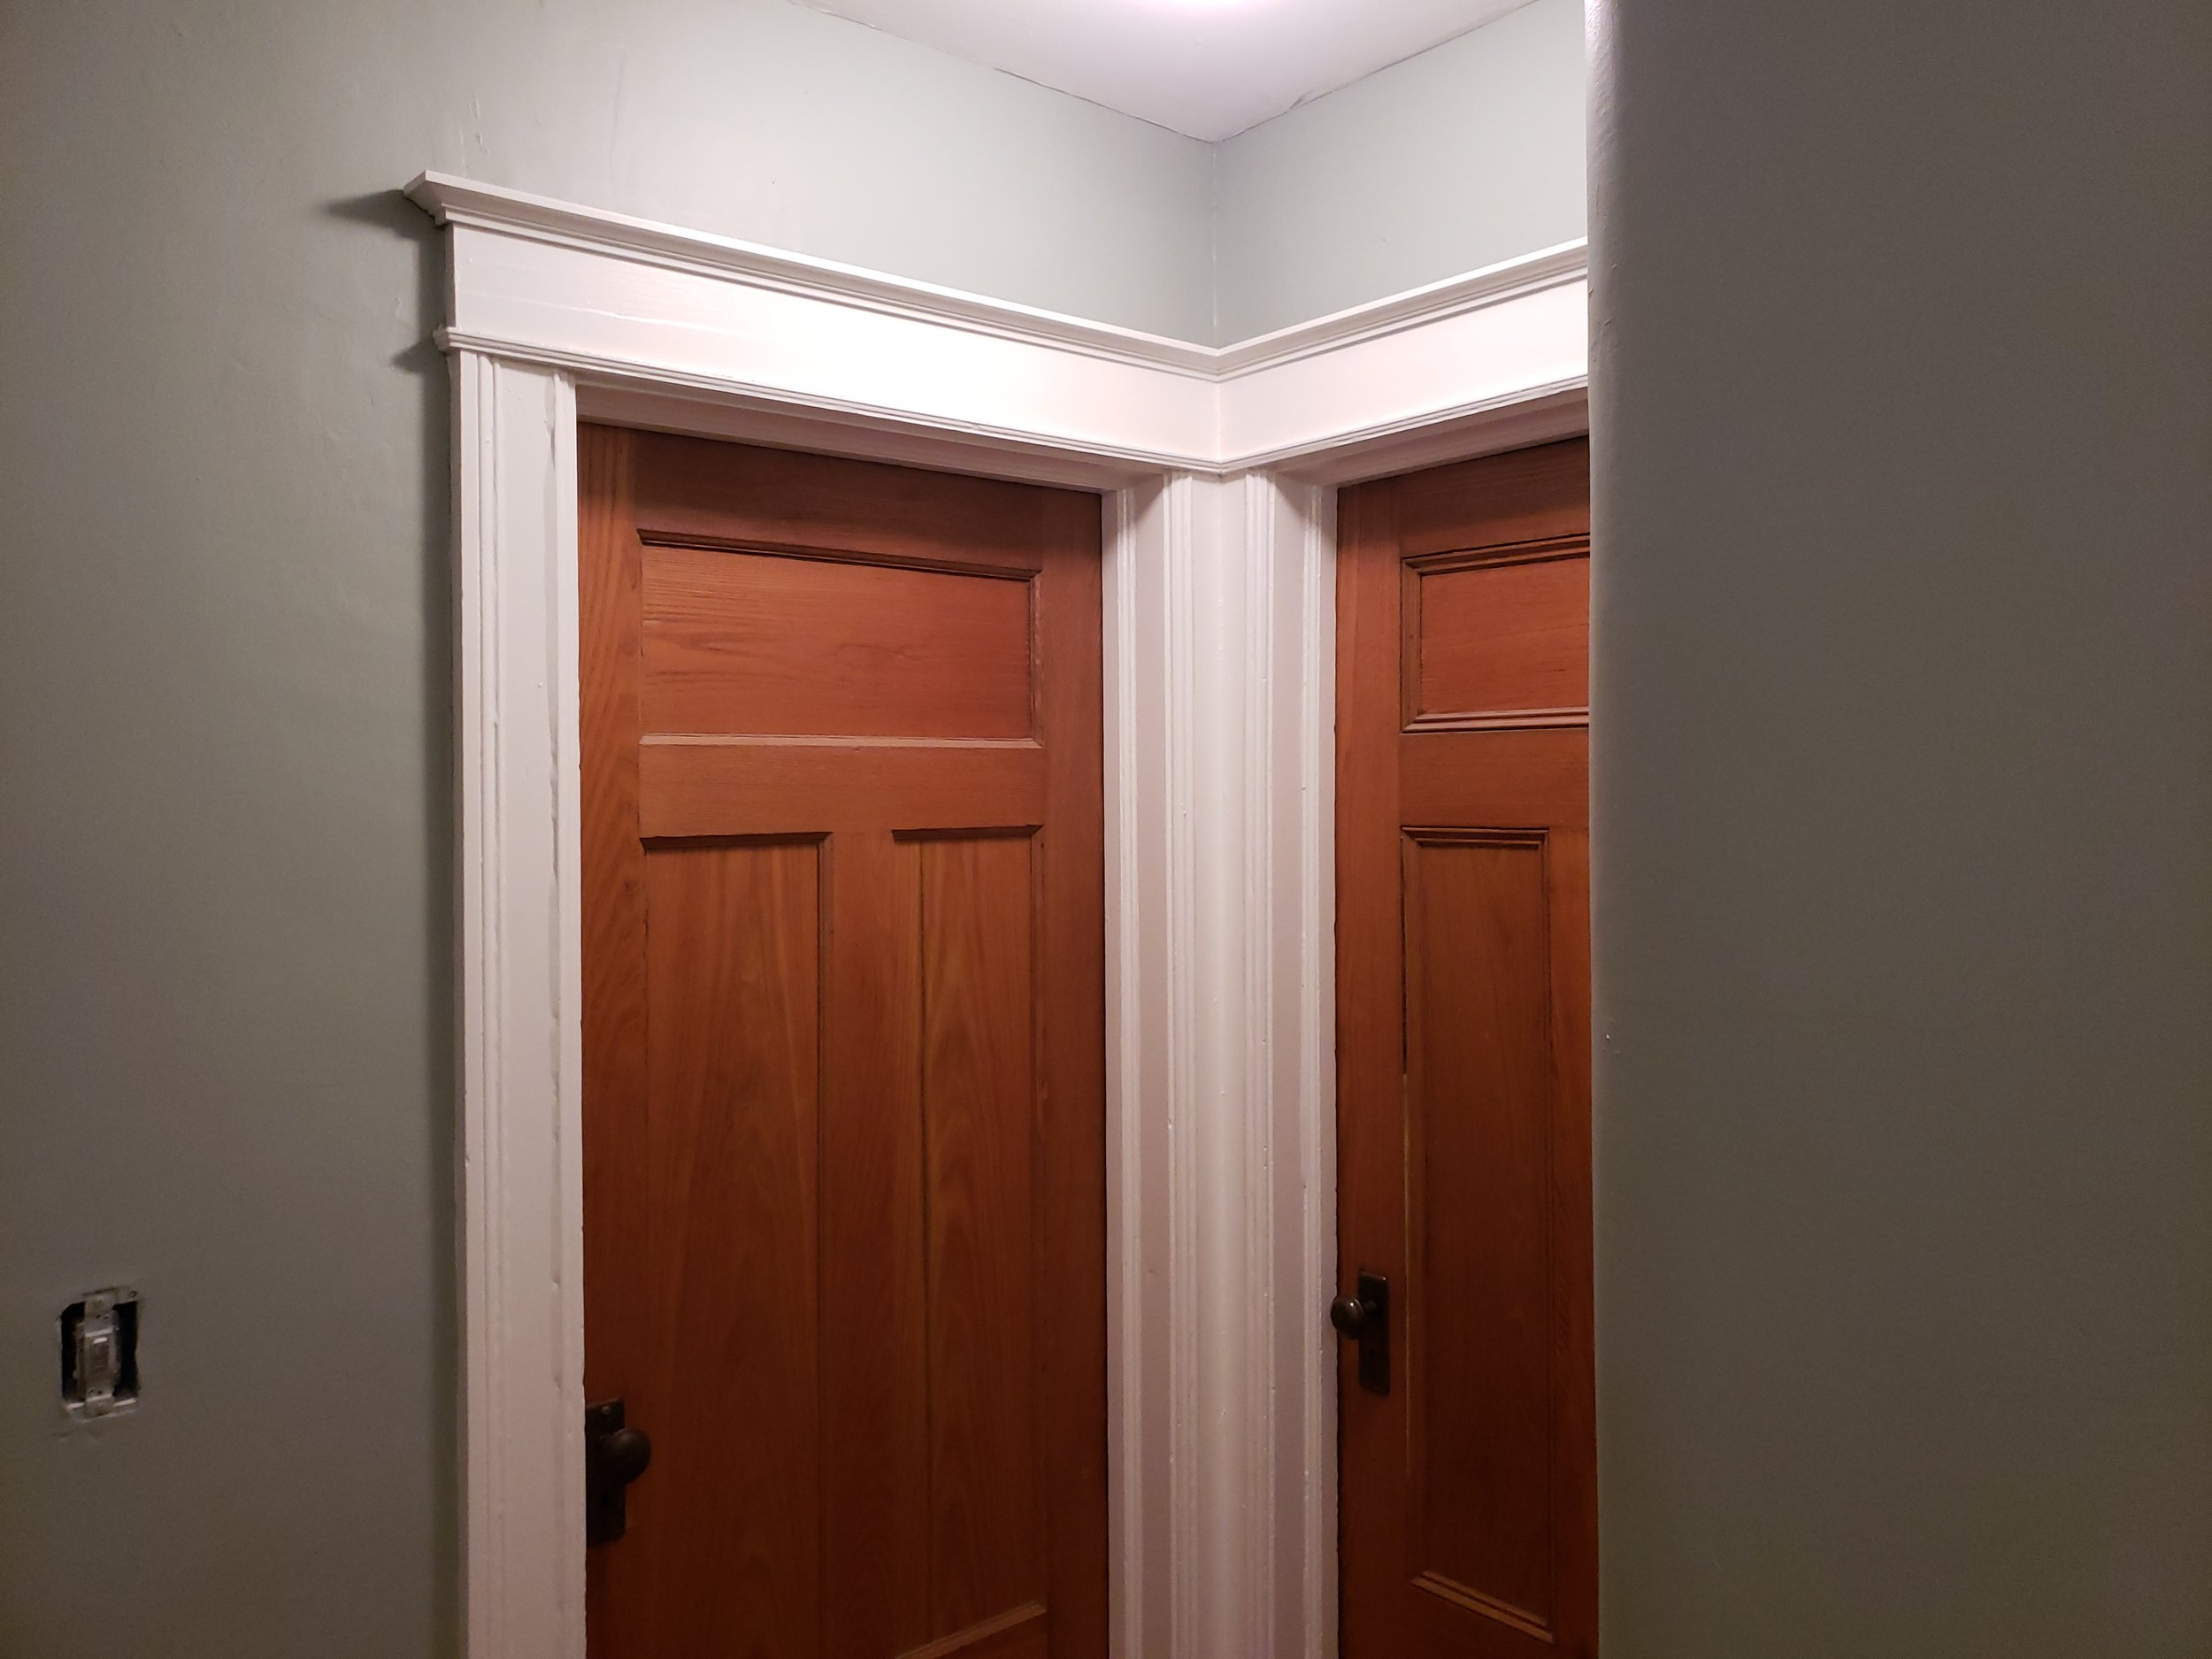 """""""Can't say enough good about Josh and Stamp Paints! Quick estimate, solid work, reasonable price! Josh sacrificed his weekend and evenings after bigger jobs to fit me in and get my smaller job done! He and his wife give great service and communicate well and quickly. Would hire them again in a heartbeat.""""    -Pam G."""